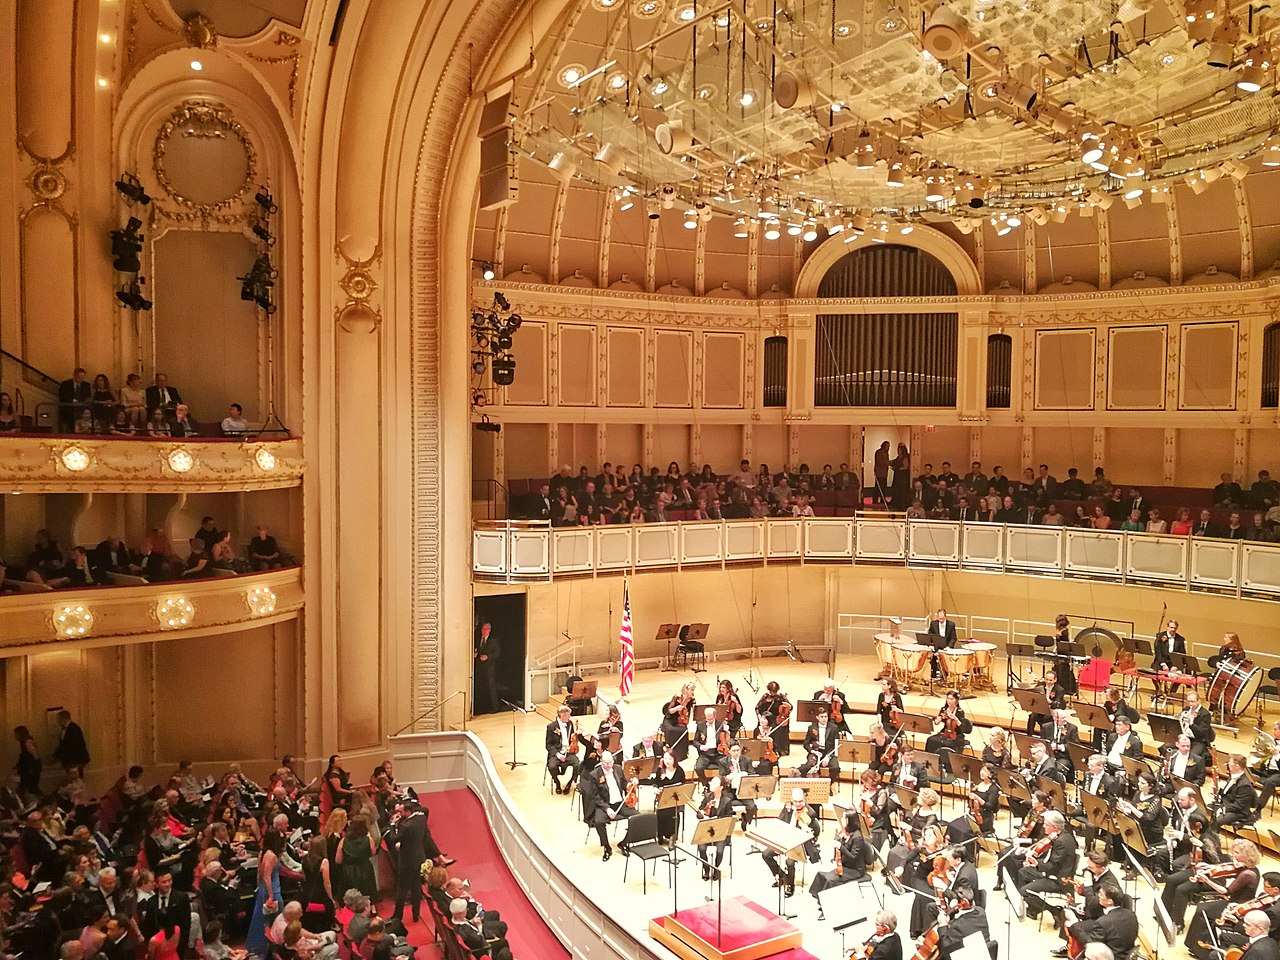 The interior of a grand performing arts center is photographed with the Chicago Symphony Orchestra seated on its stage.